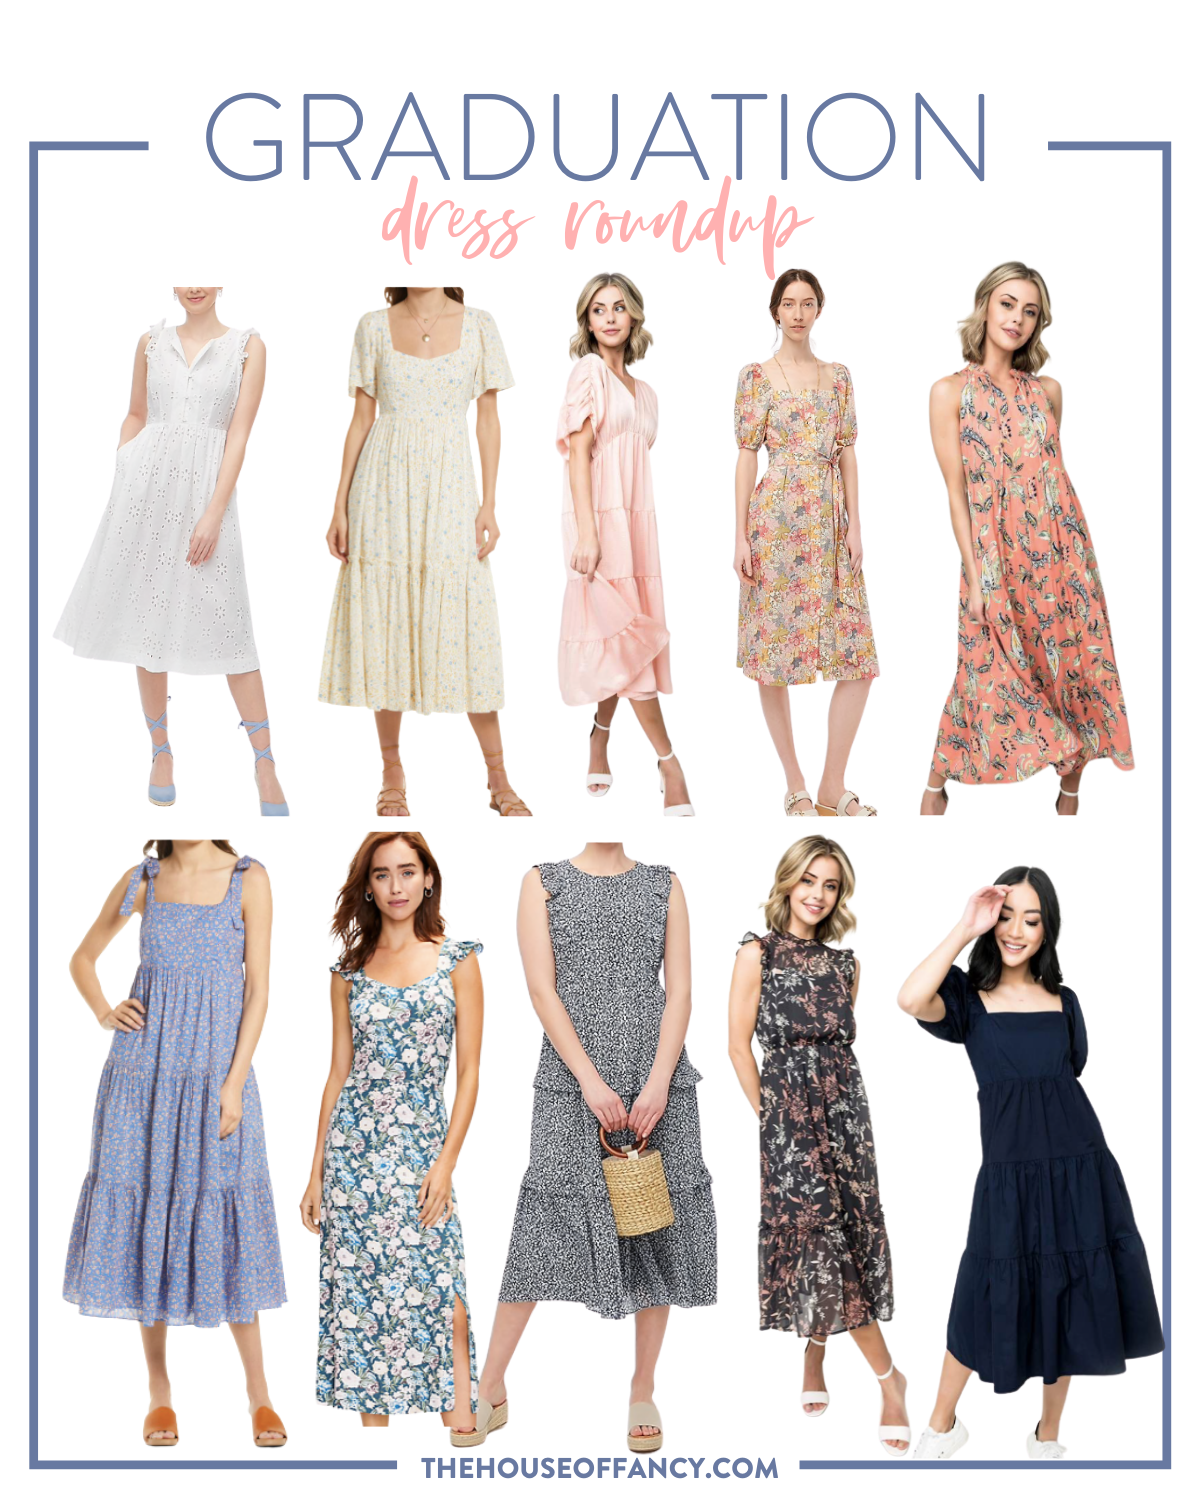 graduation dress roundup | pink graduation dress | Graduation Dress by popular Houston fashion blog, The House of Fancy: collage image of floral print dresses, babydoll dresses, maxi dresses, and a white eyelet dress.